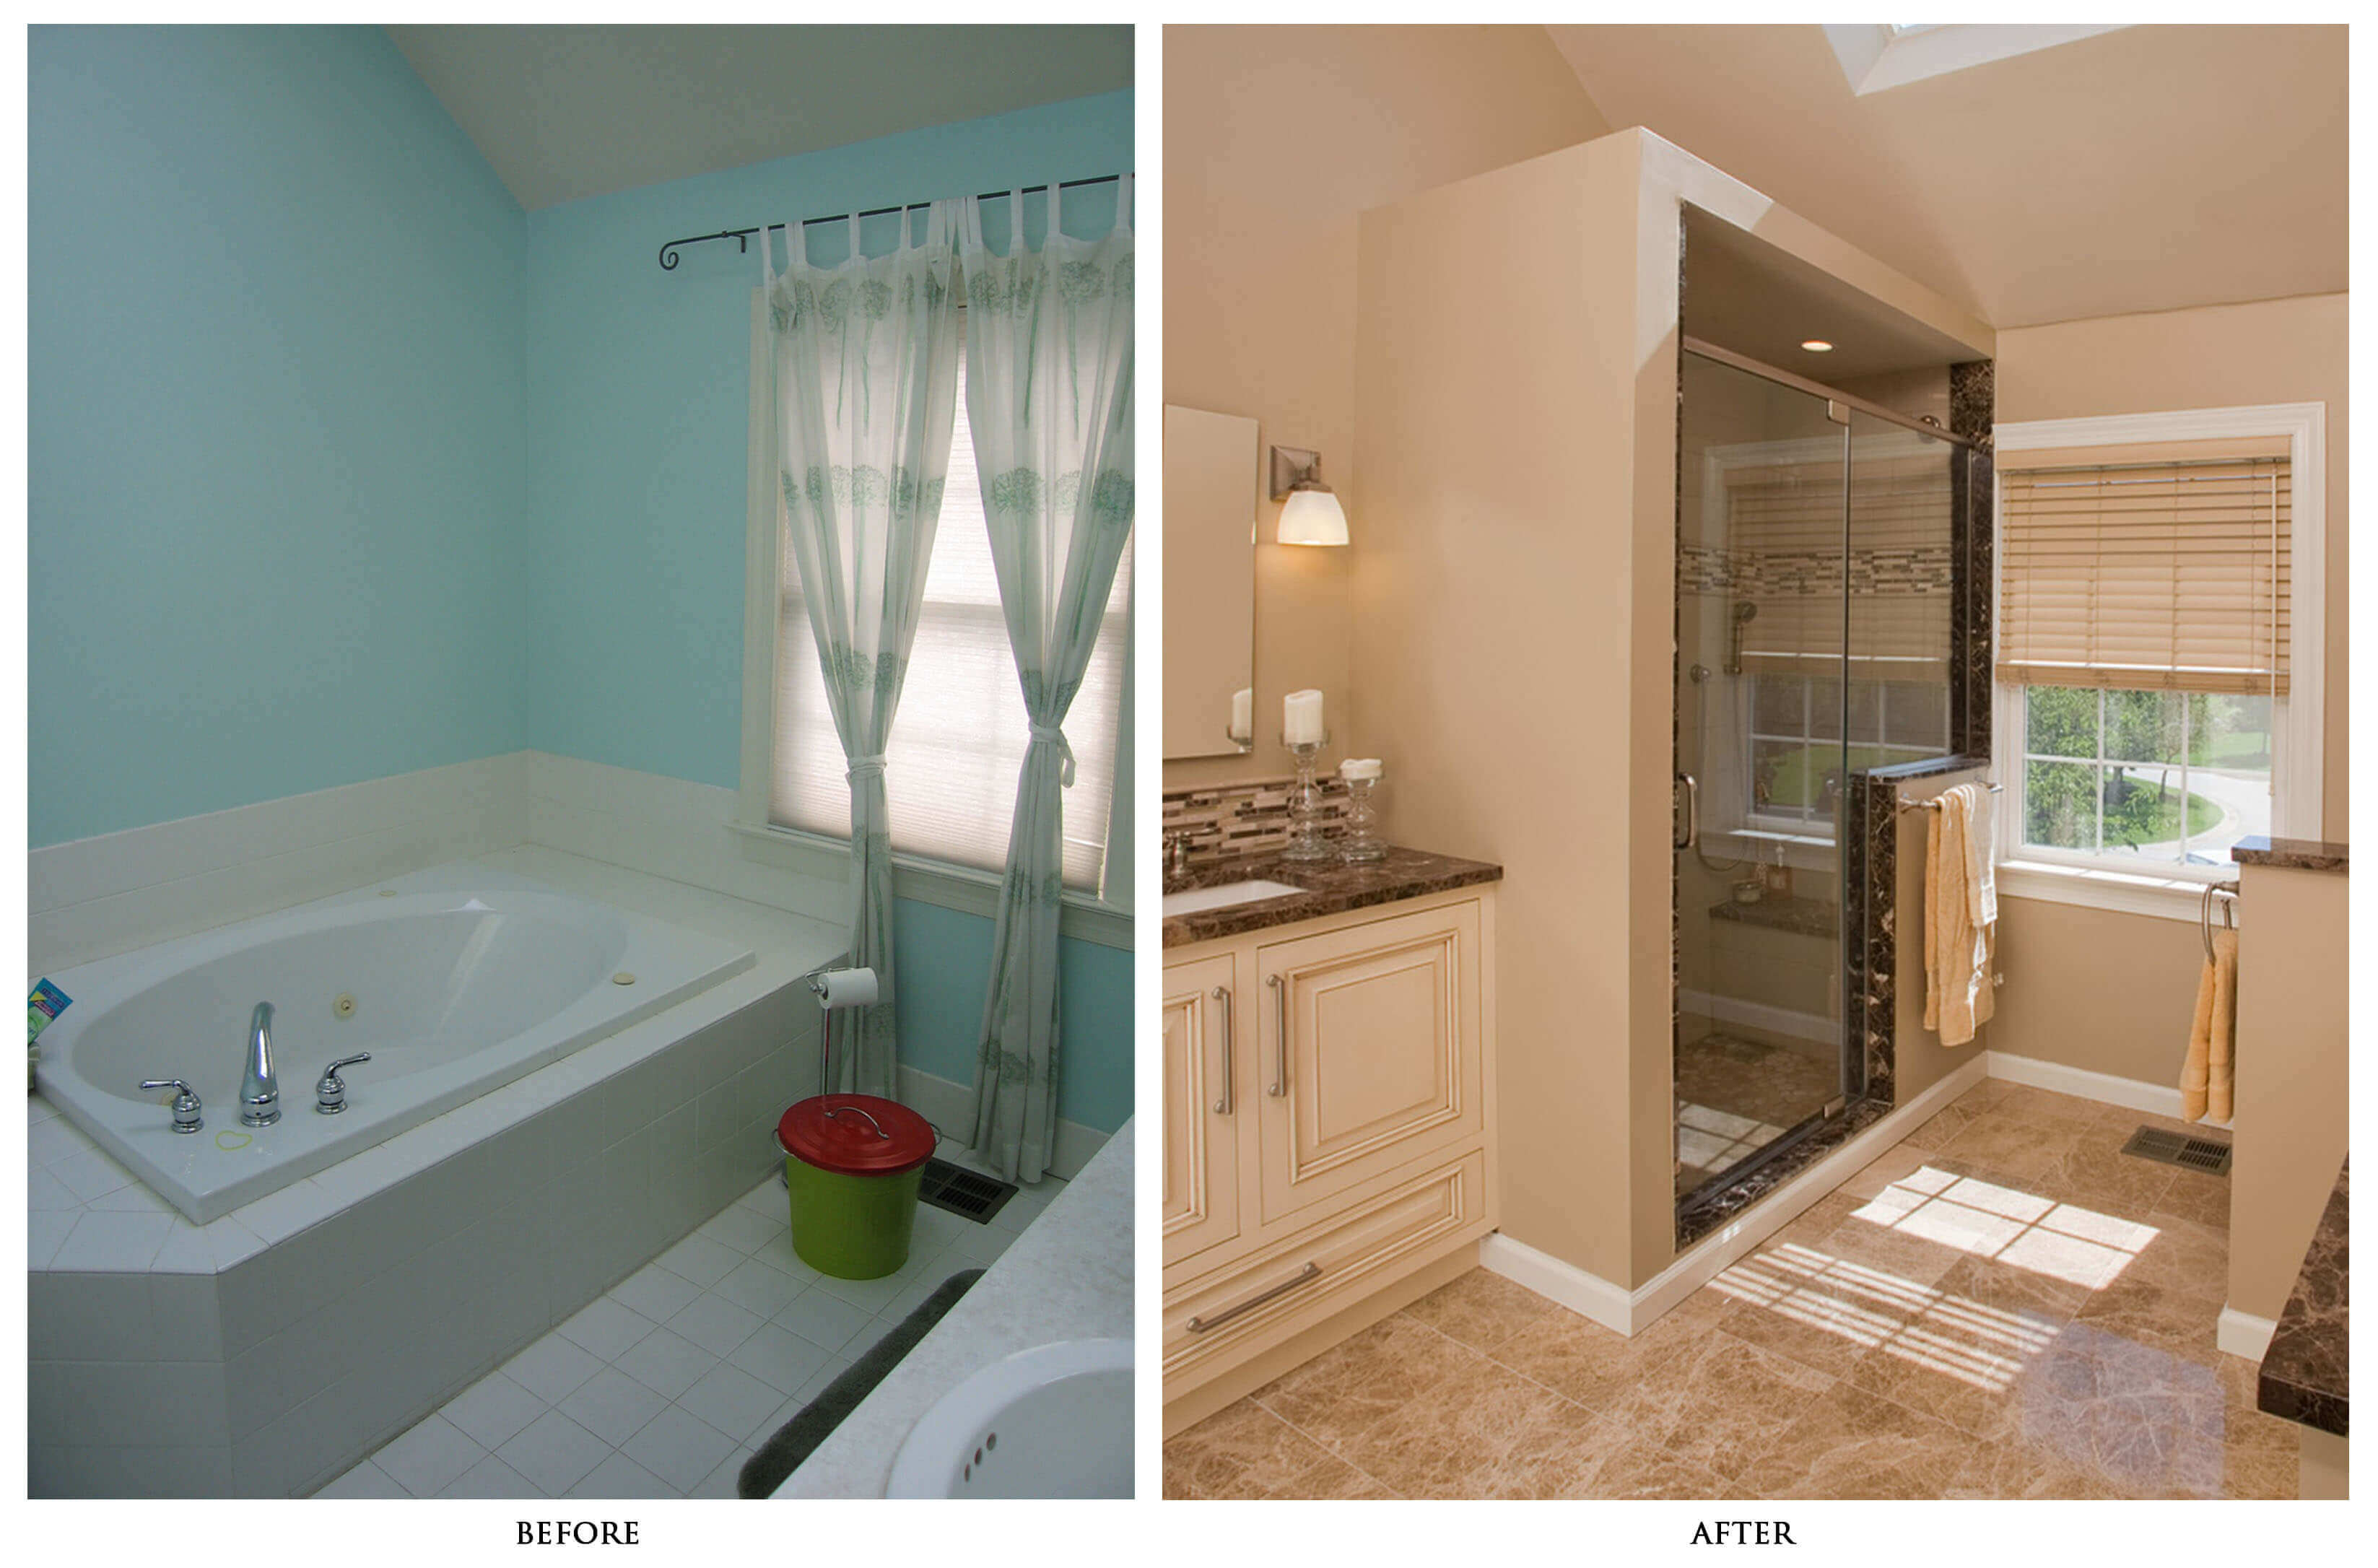 Bathroom remodel return on investment remodeling cost - Bathroom renovations cost calculator ...